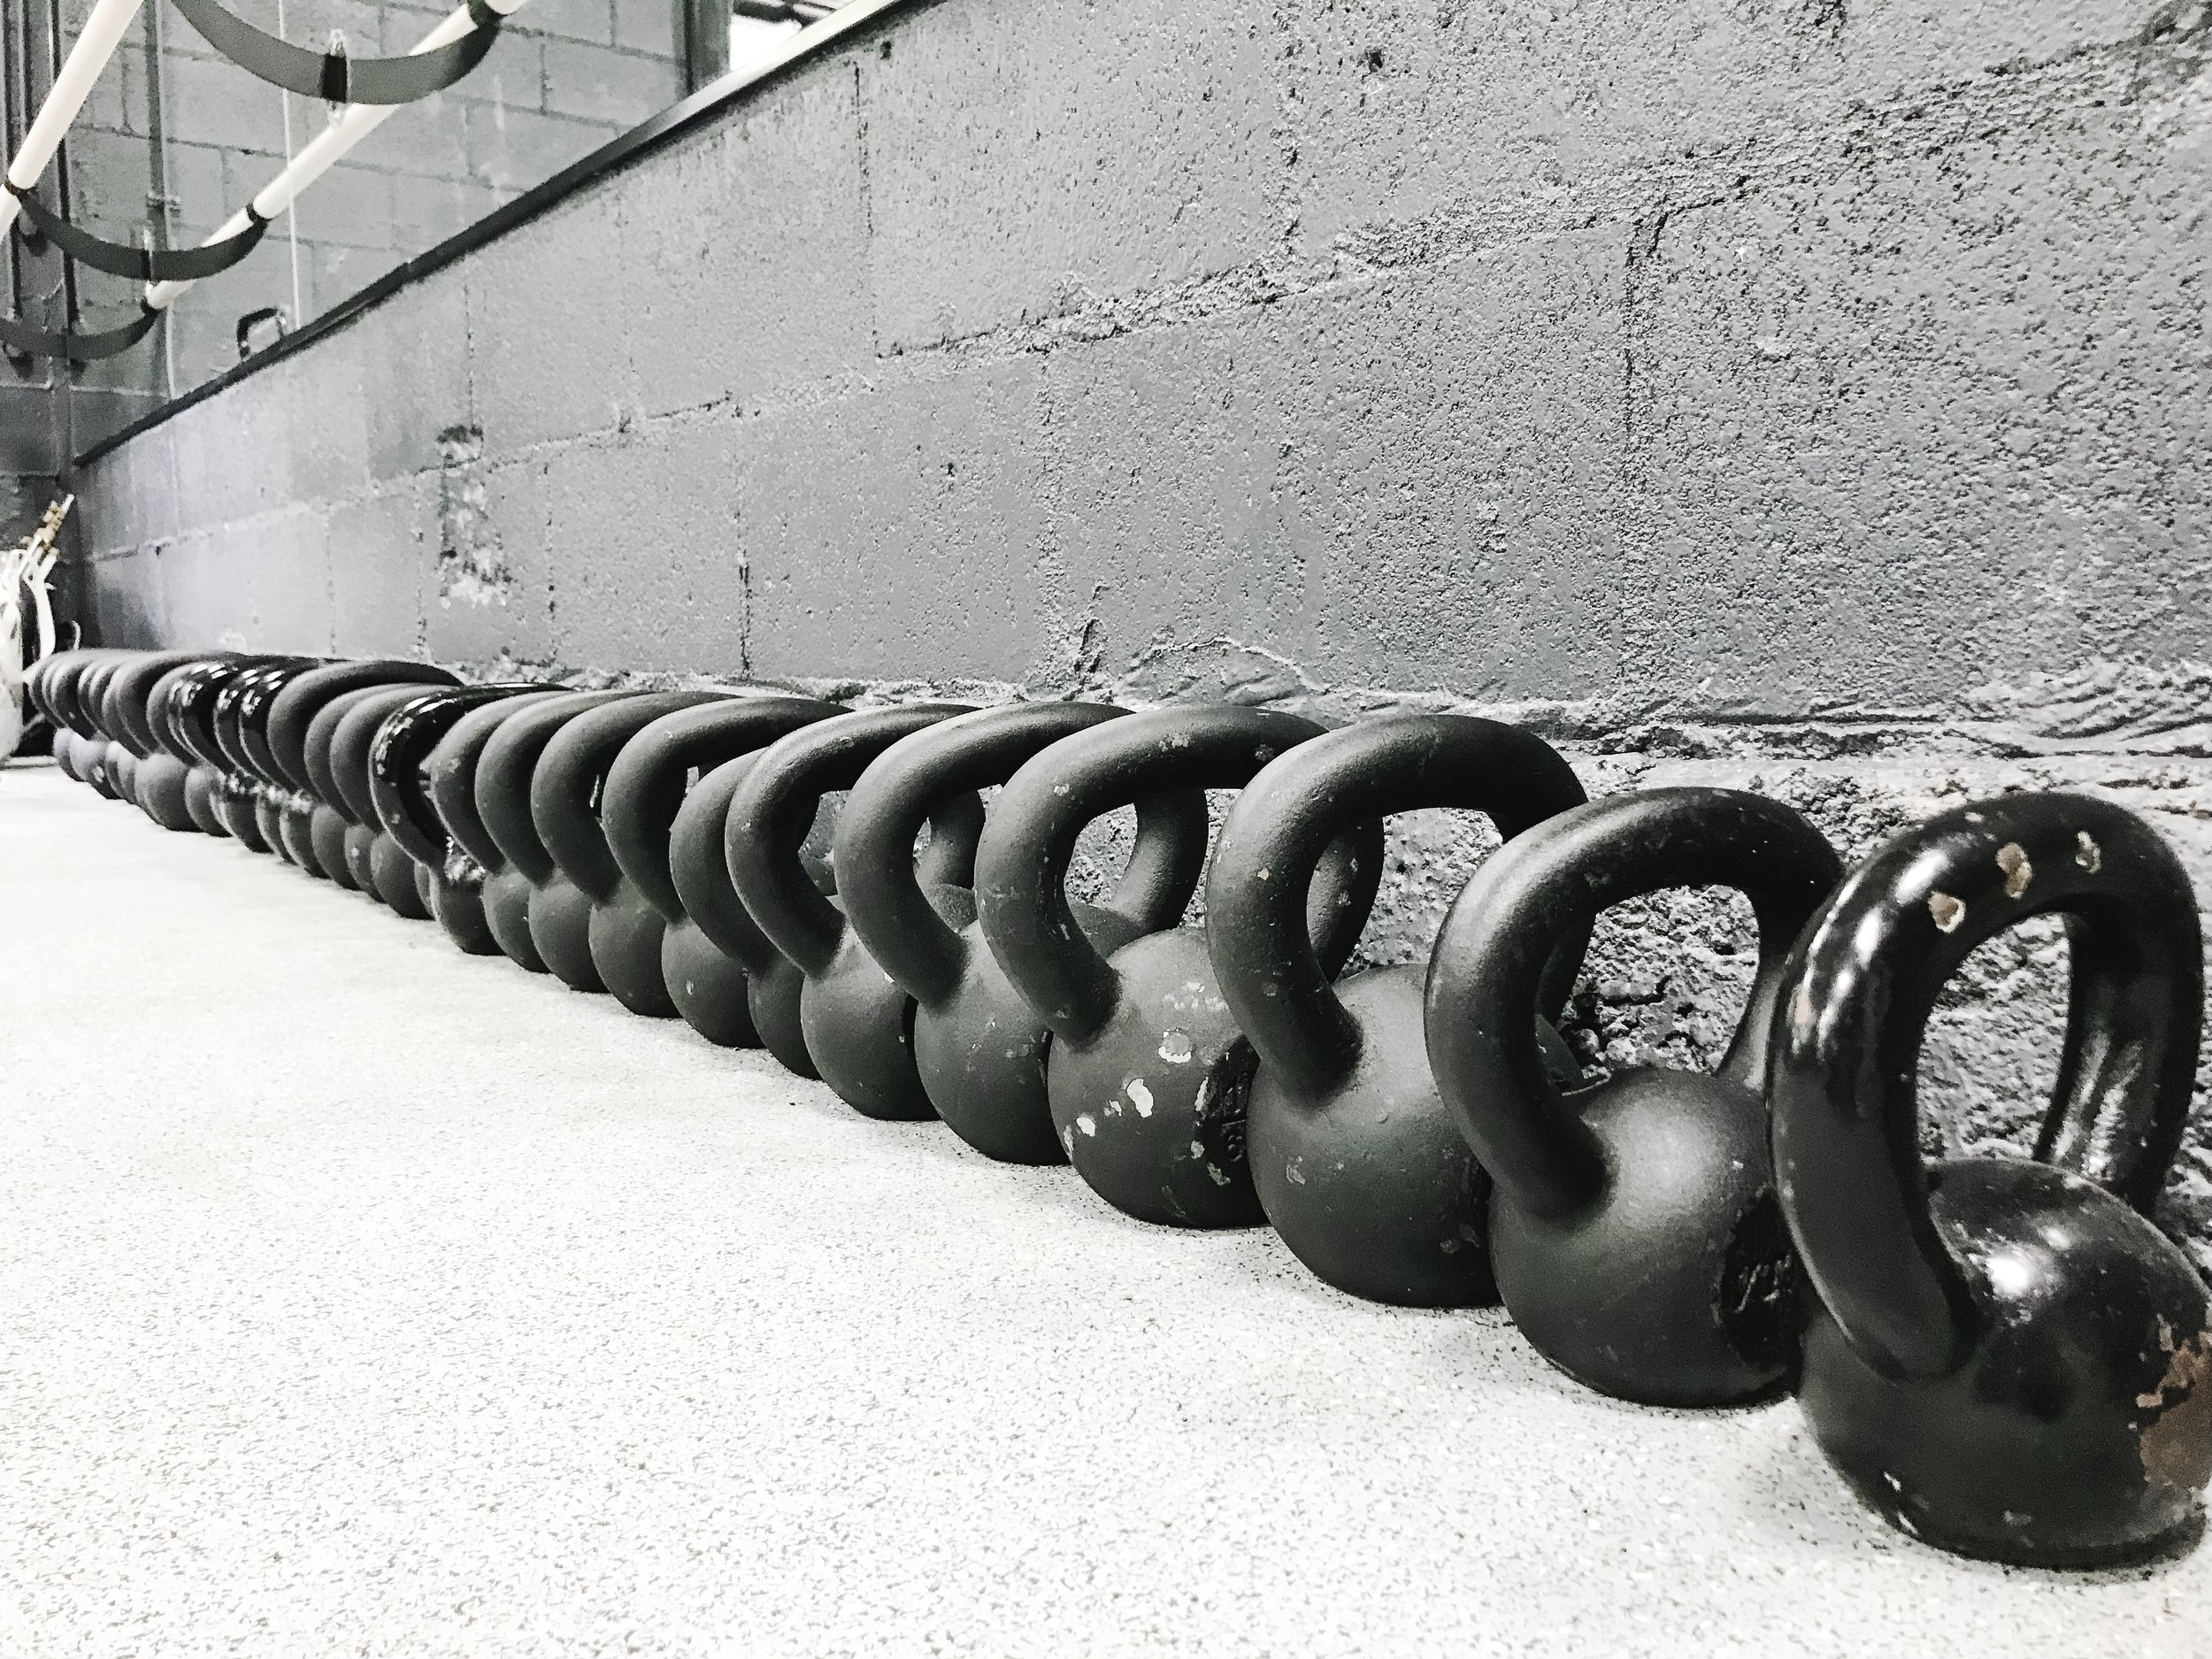 TRX/Kettlebell - Cover all your bases with two of the most effective tools : TRX and kettlebells!